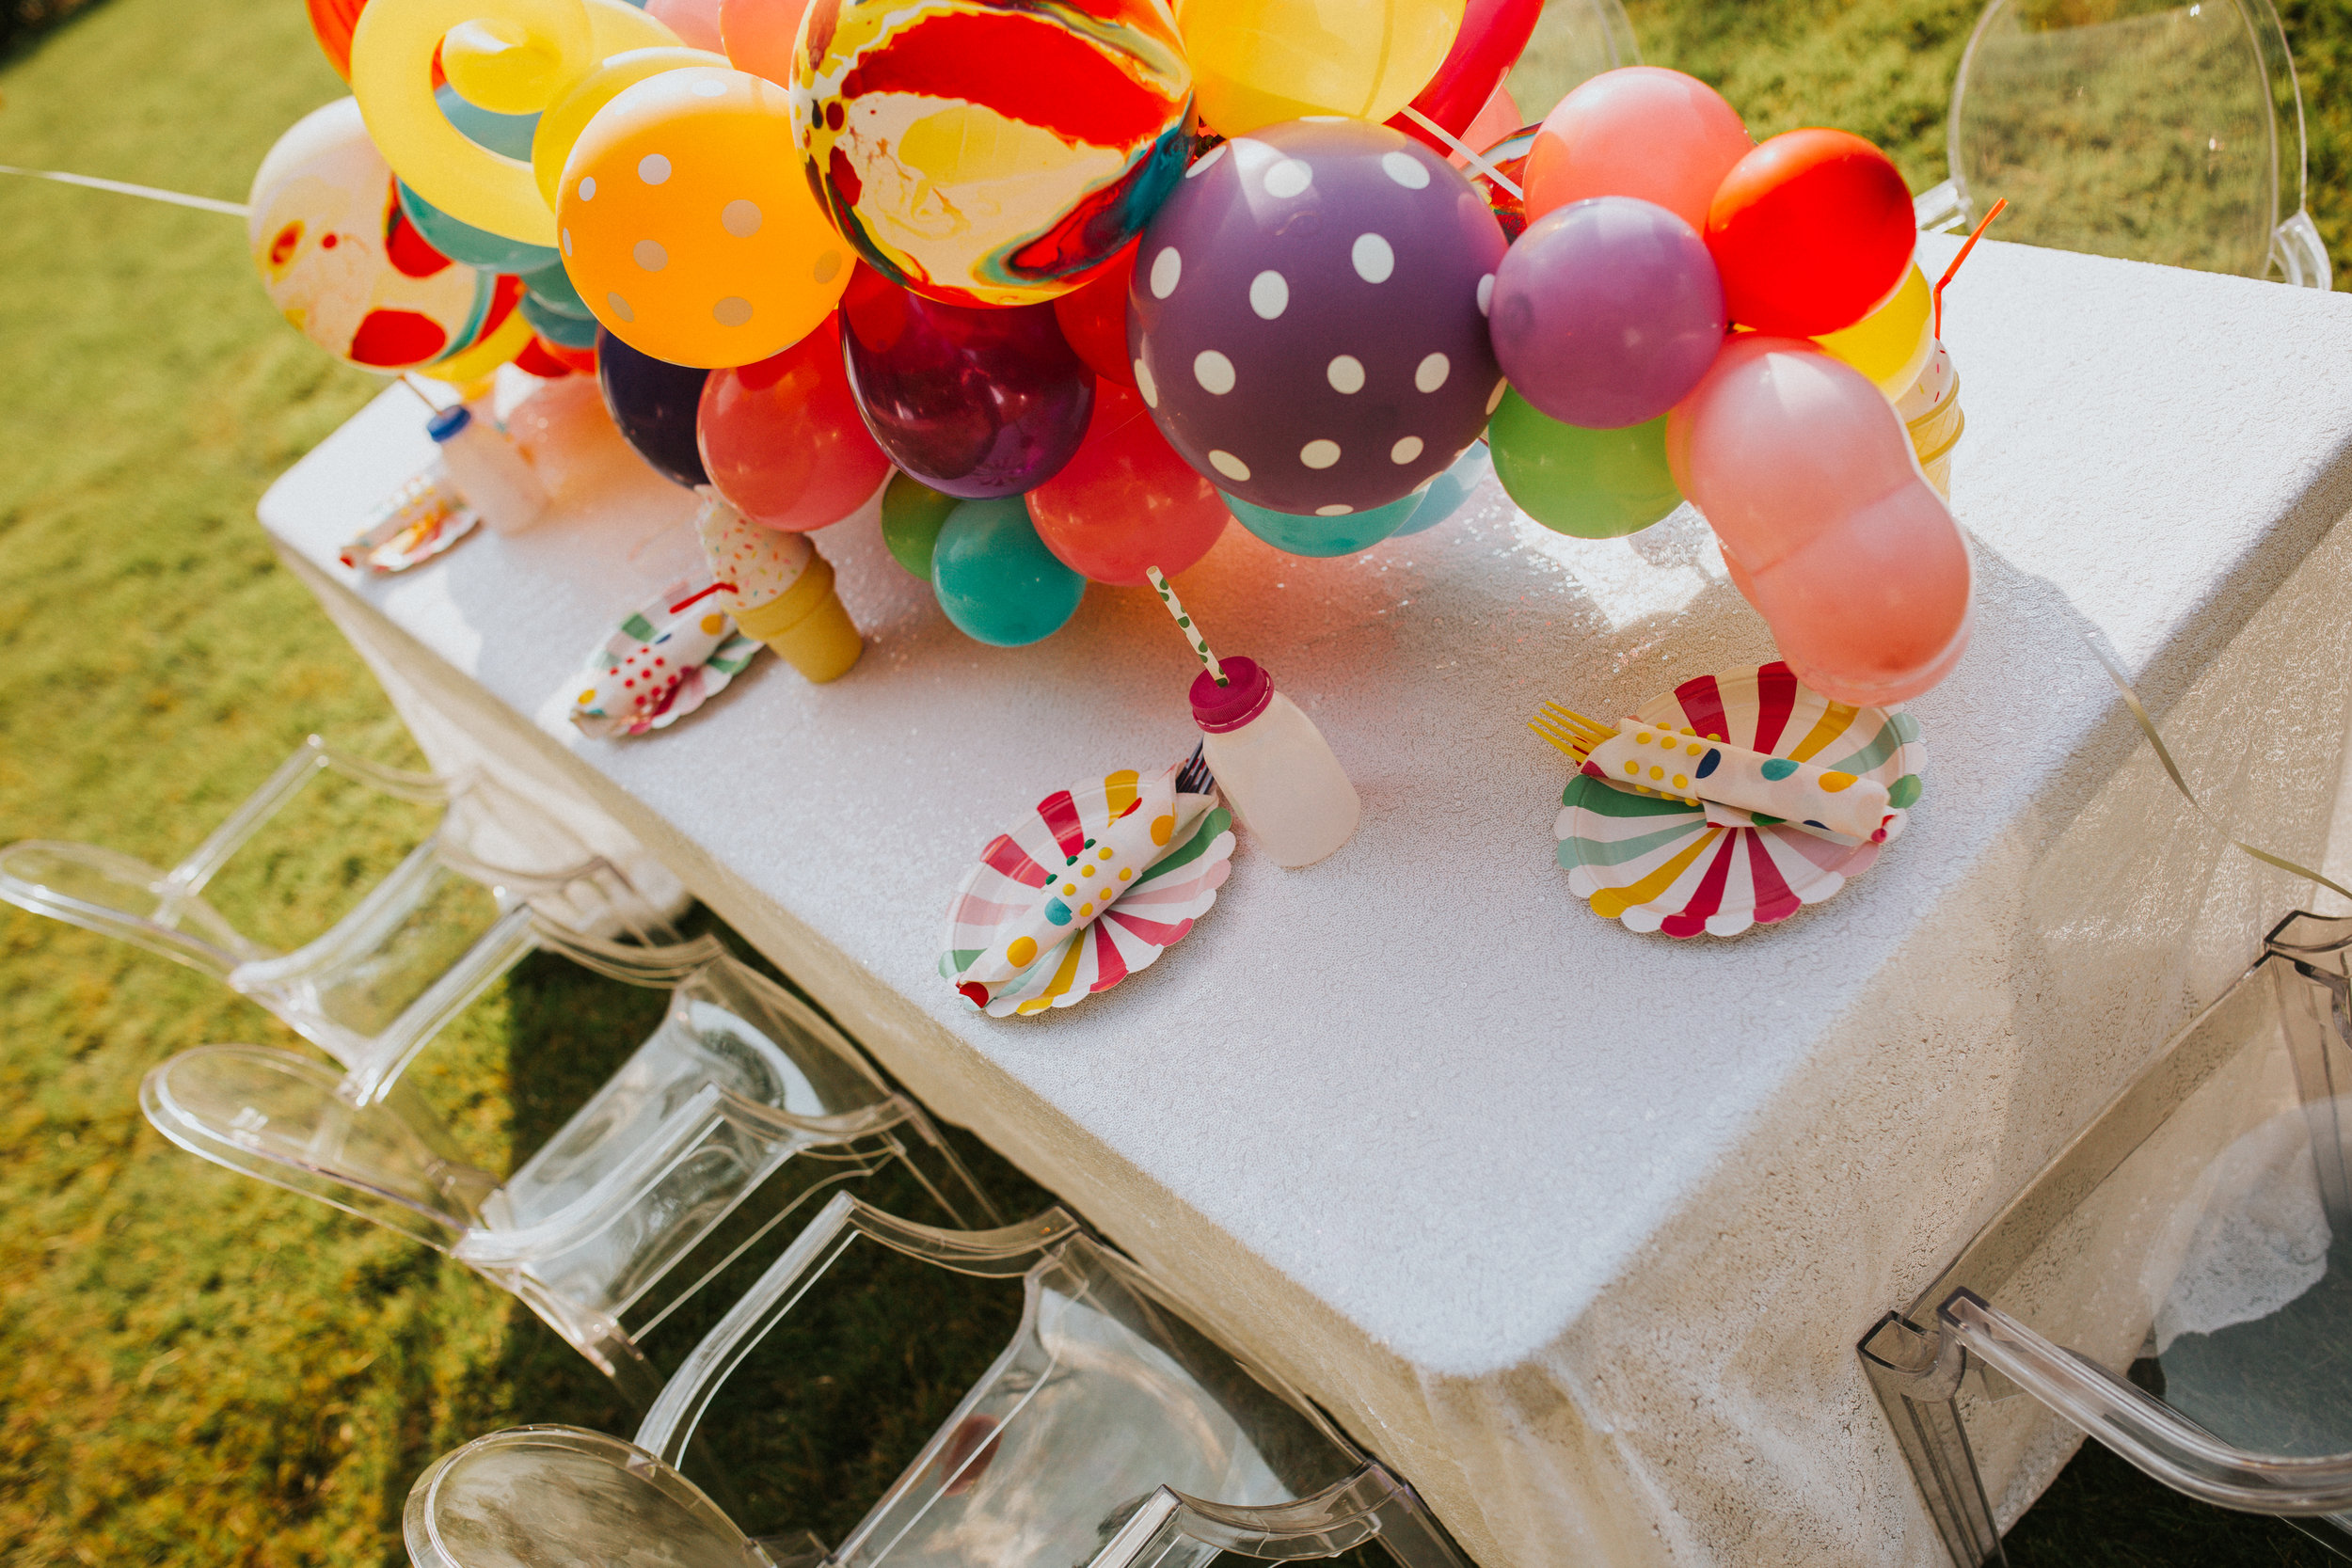 Willy Wonka Themed Birthday Party - Scarlet Plan & Design Atlanta Party Event Planners & Designers (21).jpg